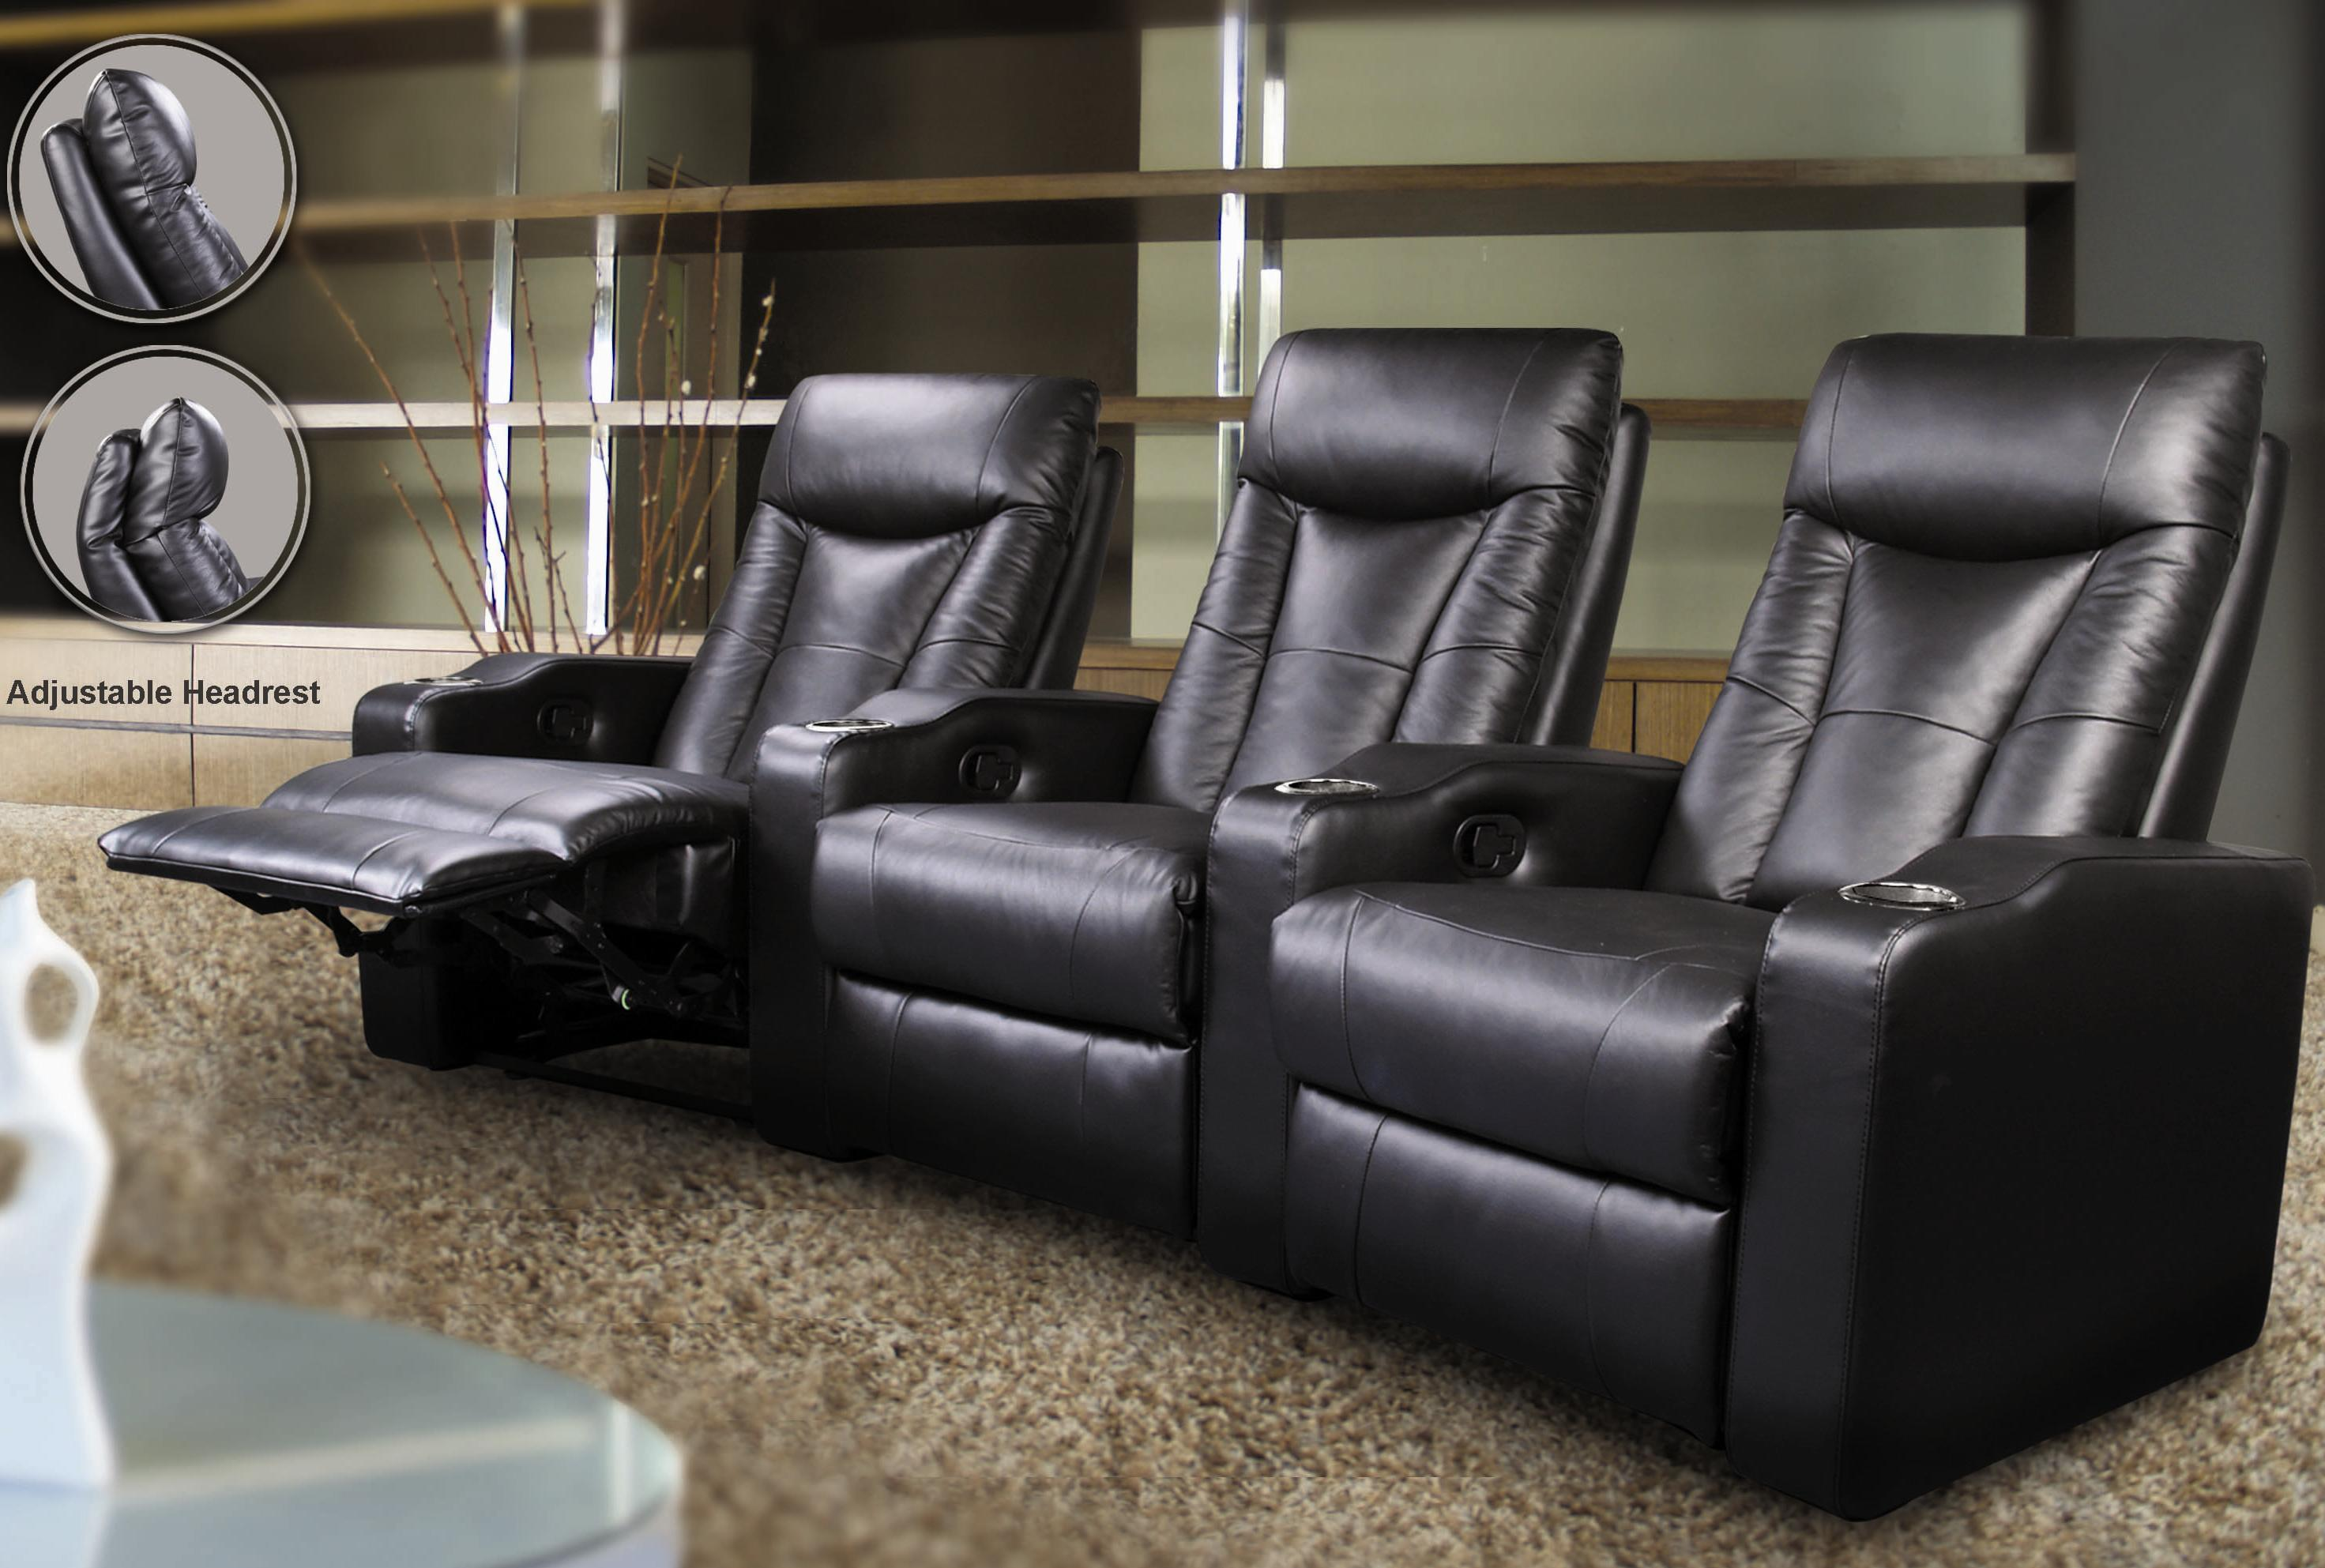 Pavillion Theater Seating by Coaster at Value City Furniture